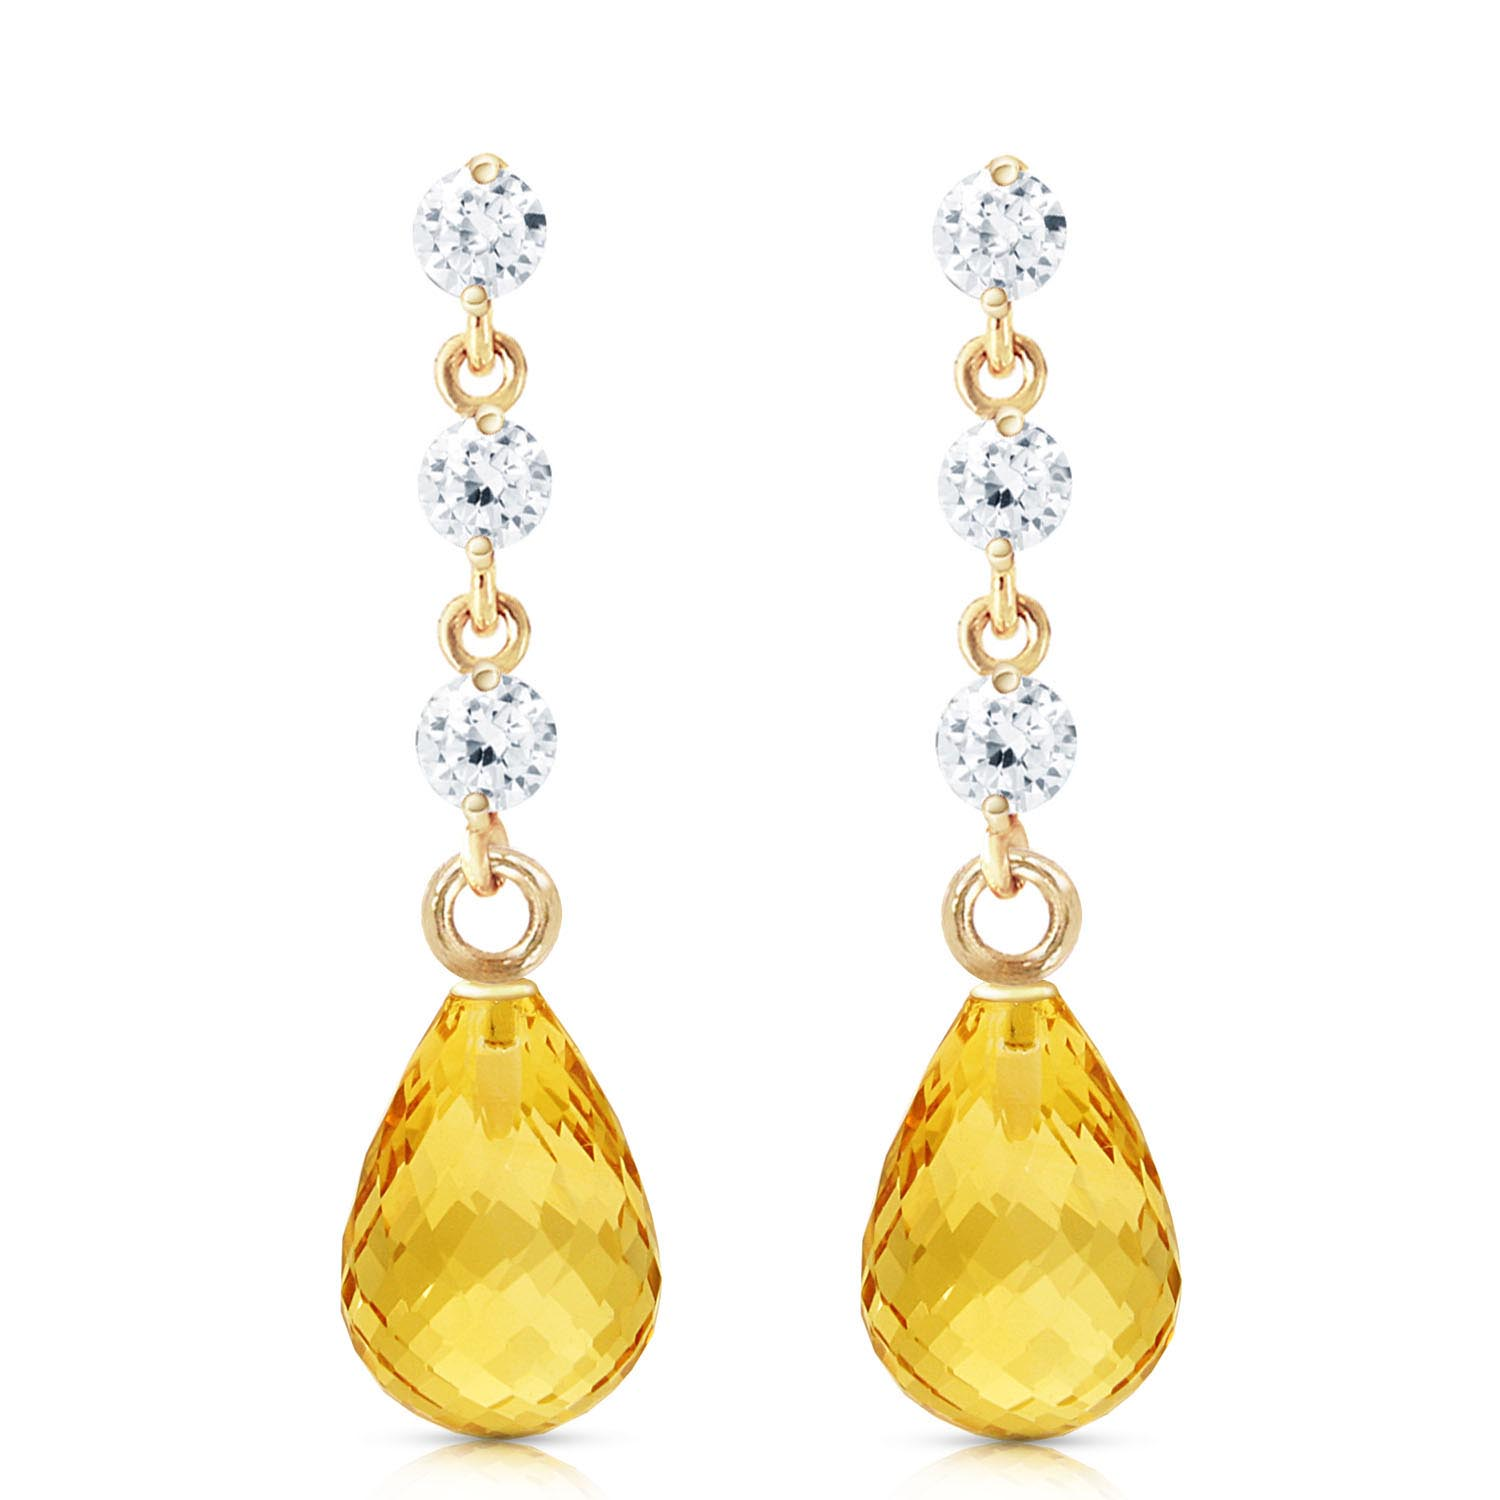 Citrine and Diamond Chain Droplet Earrings 3.0ctw in 9ct Gold